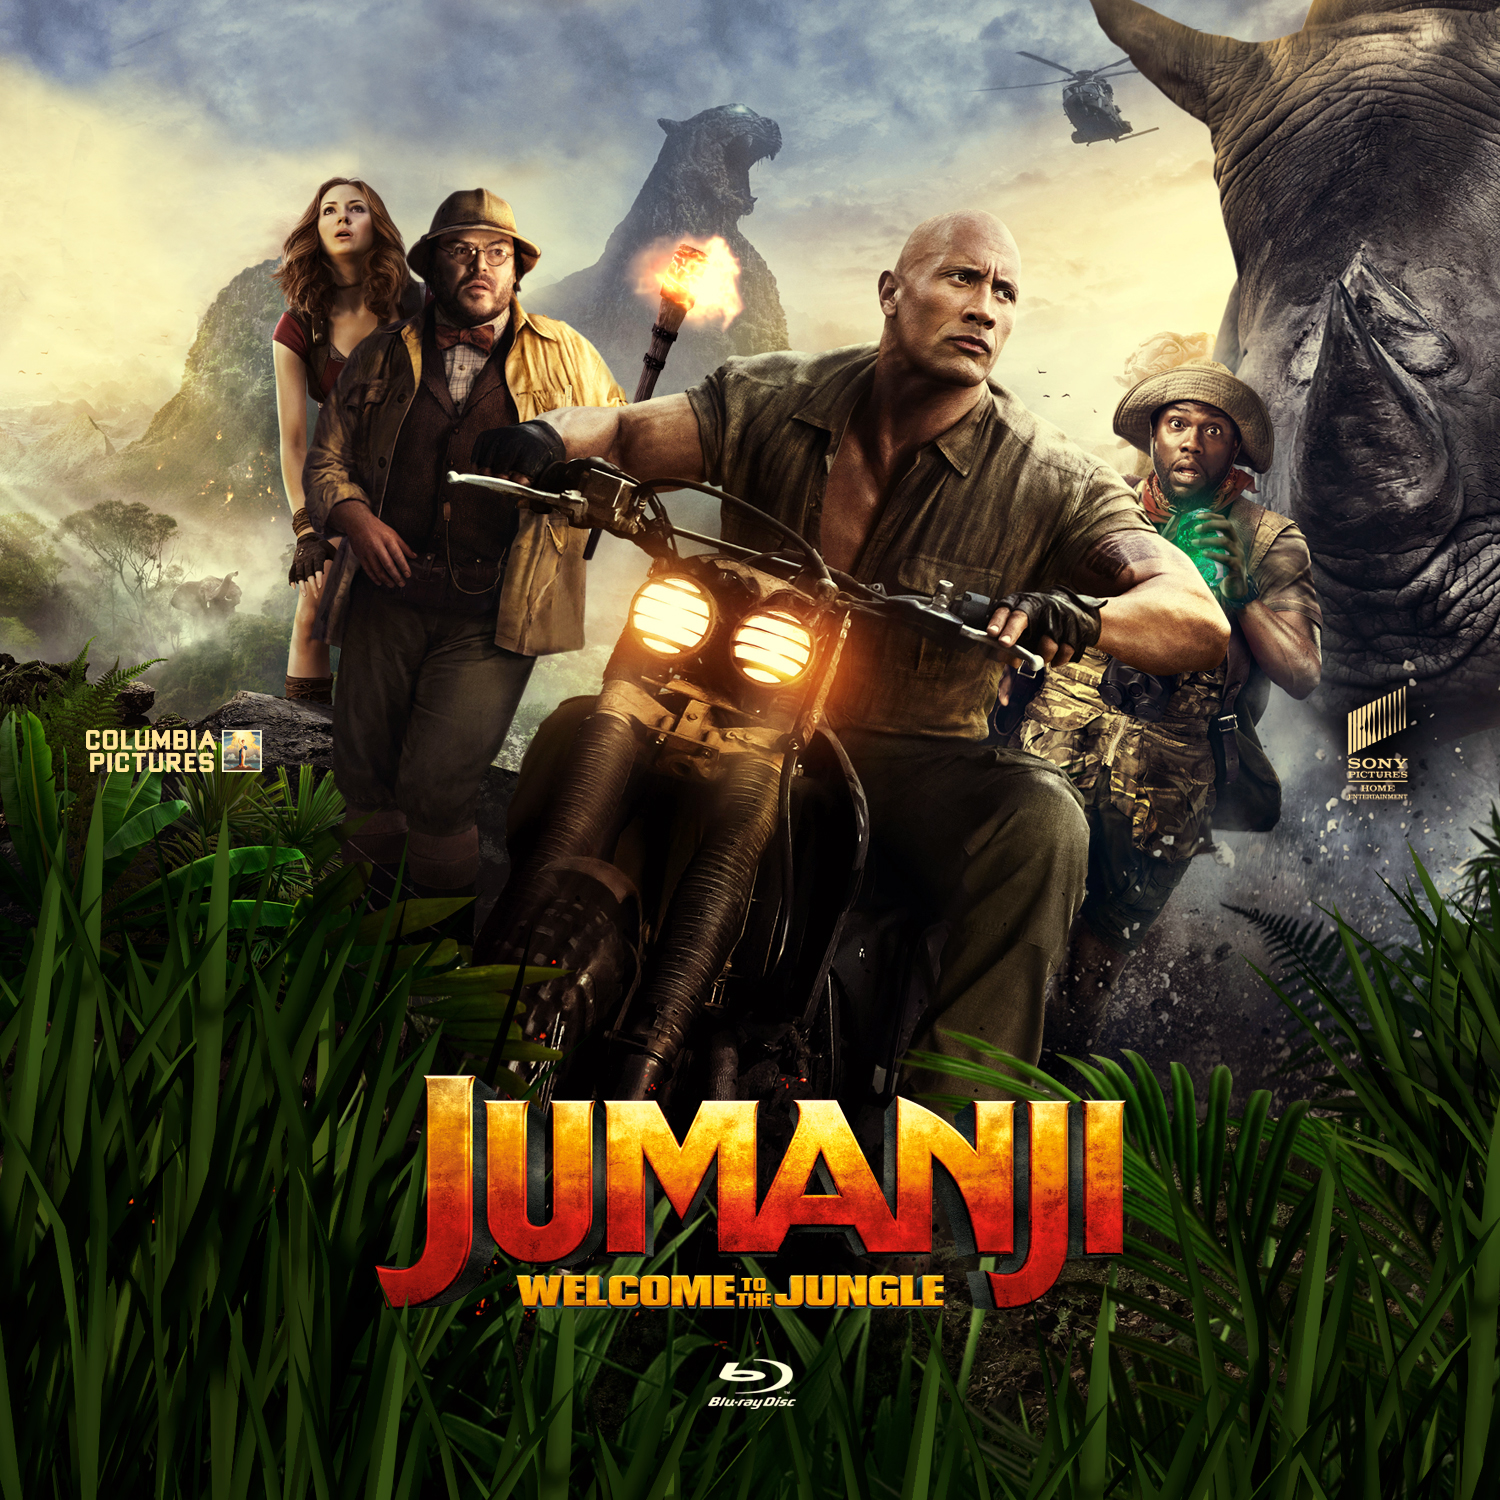 *U1747 - Jumanji (Welcome to the Jungle) (2017)